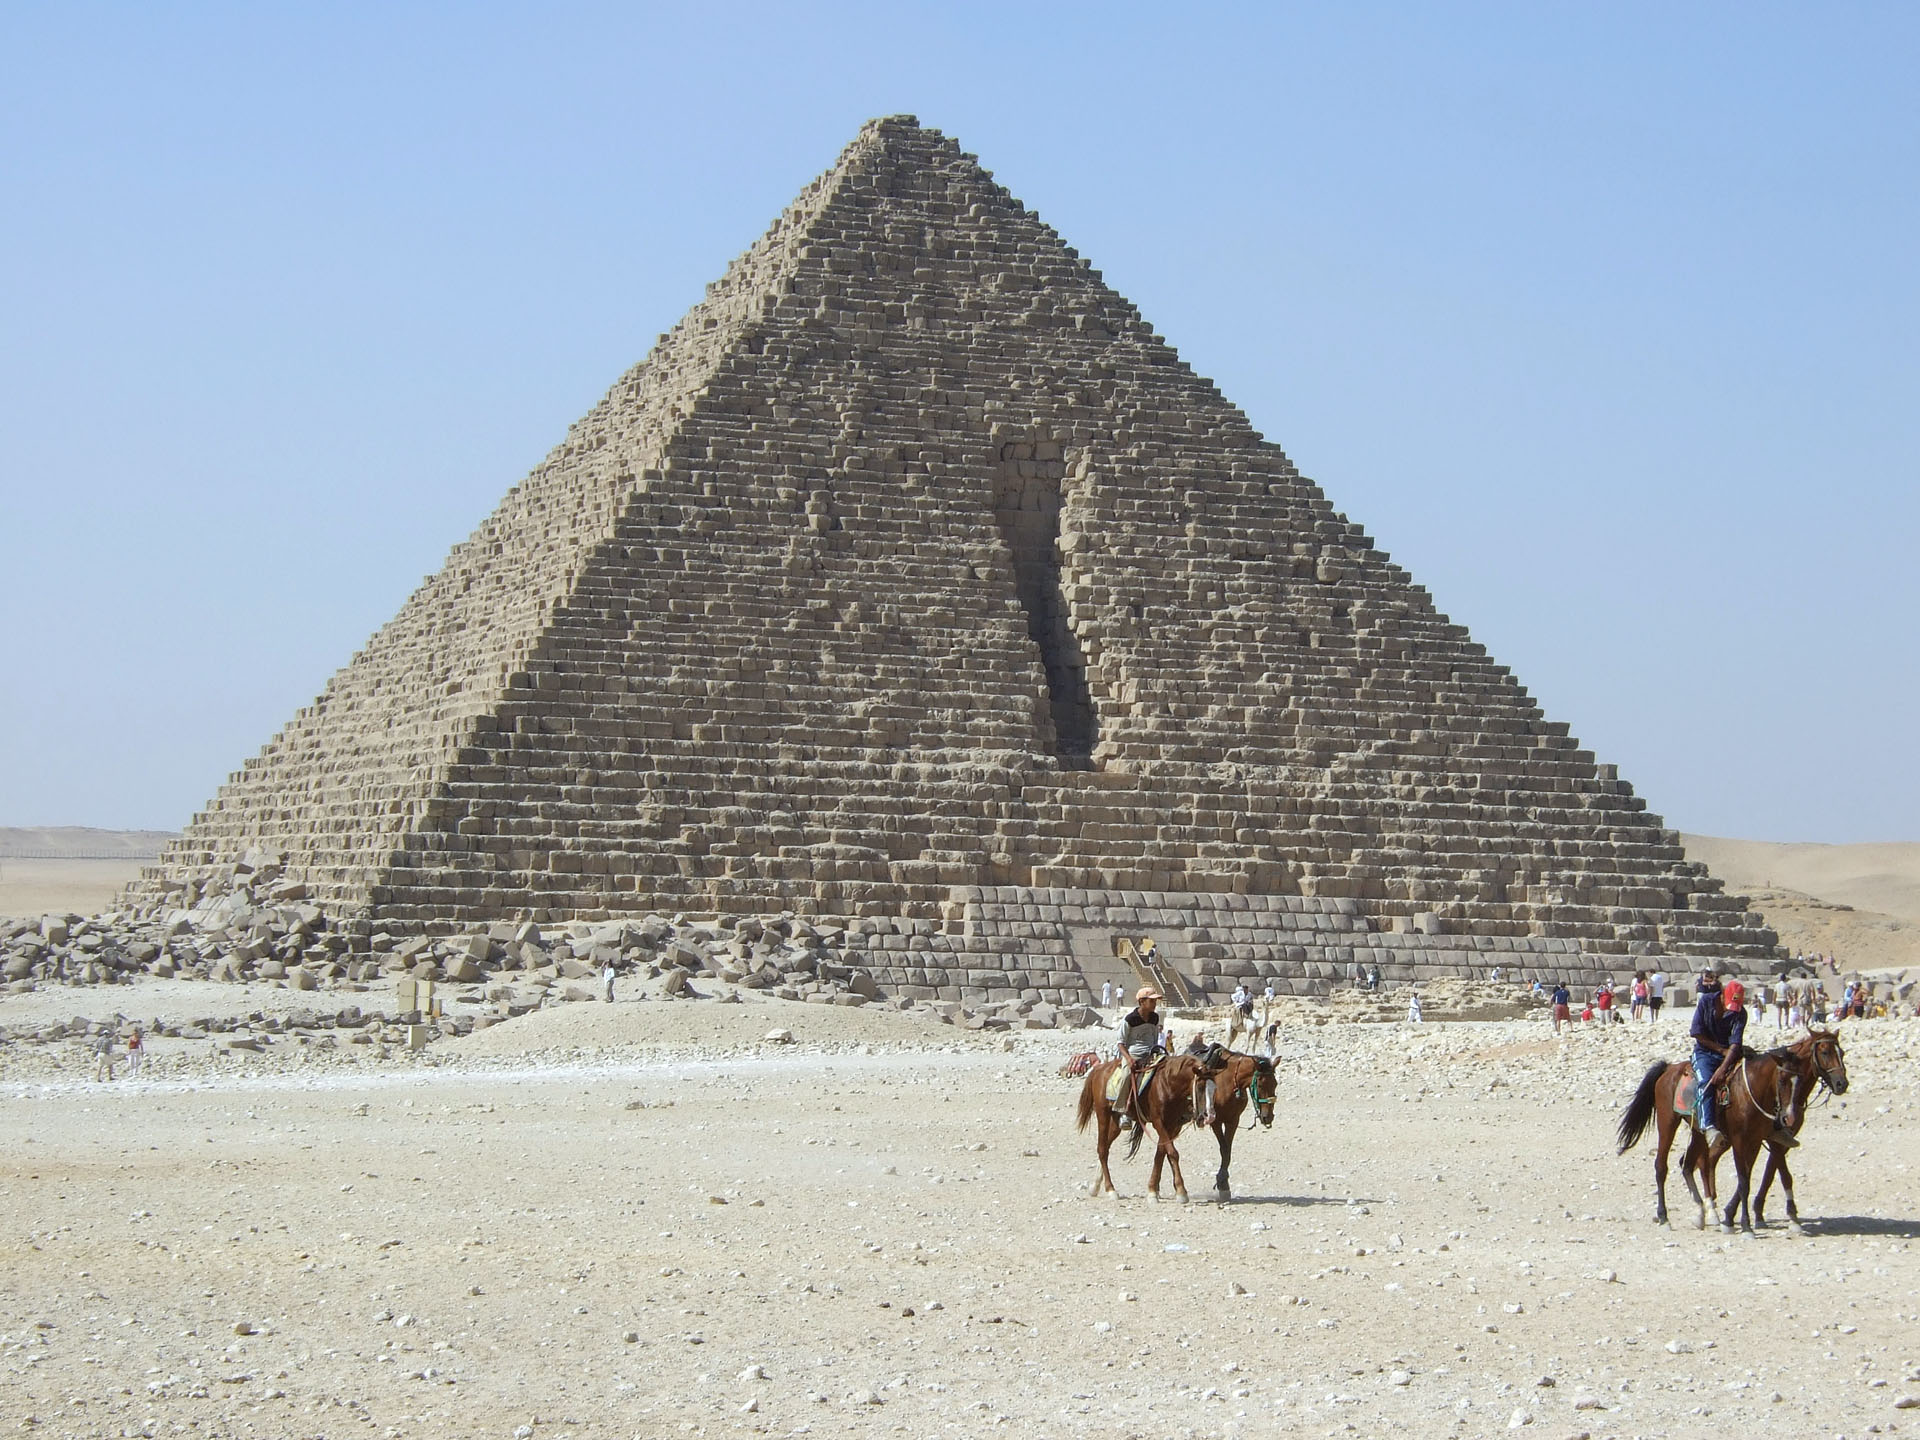 a history of the pyramids in egypt Influenced by cambridge university's barry kemp, who wrote ancient egypt: anatomy of a civilization, lehner came to believe that the colossal marshaling of resources required to build the three pyramids at giza—which dwarf all other pyramids before or since—must have shaped the civilization itself.